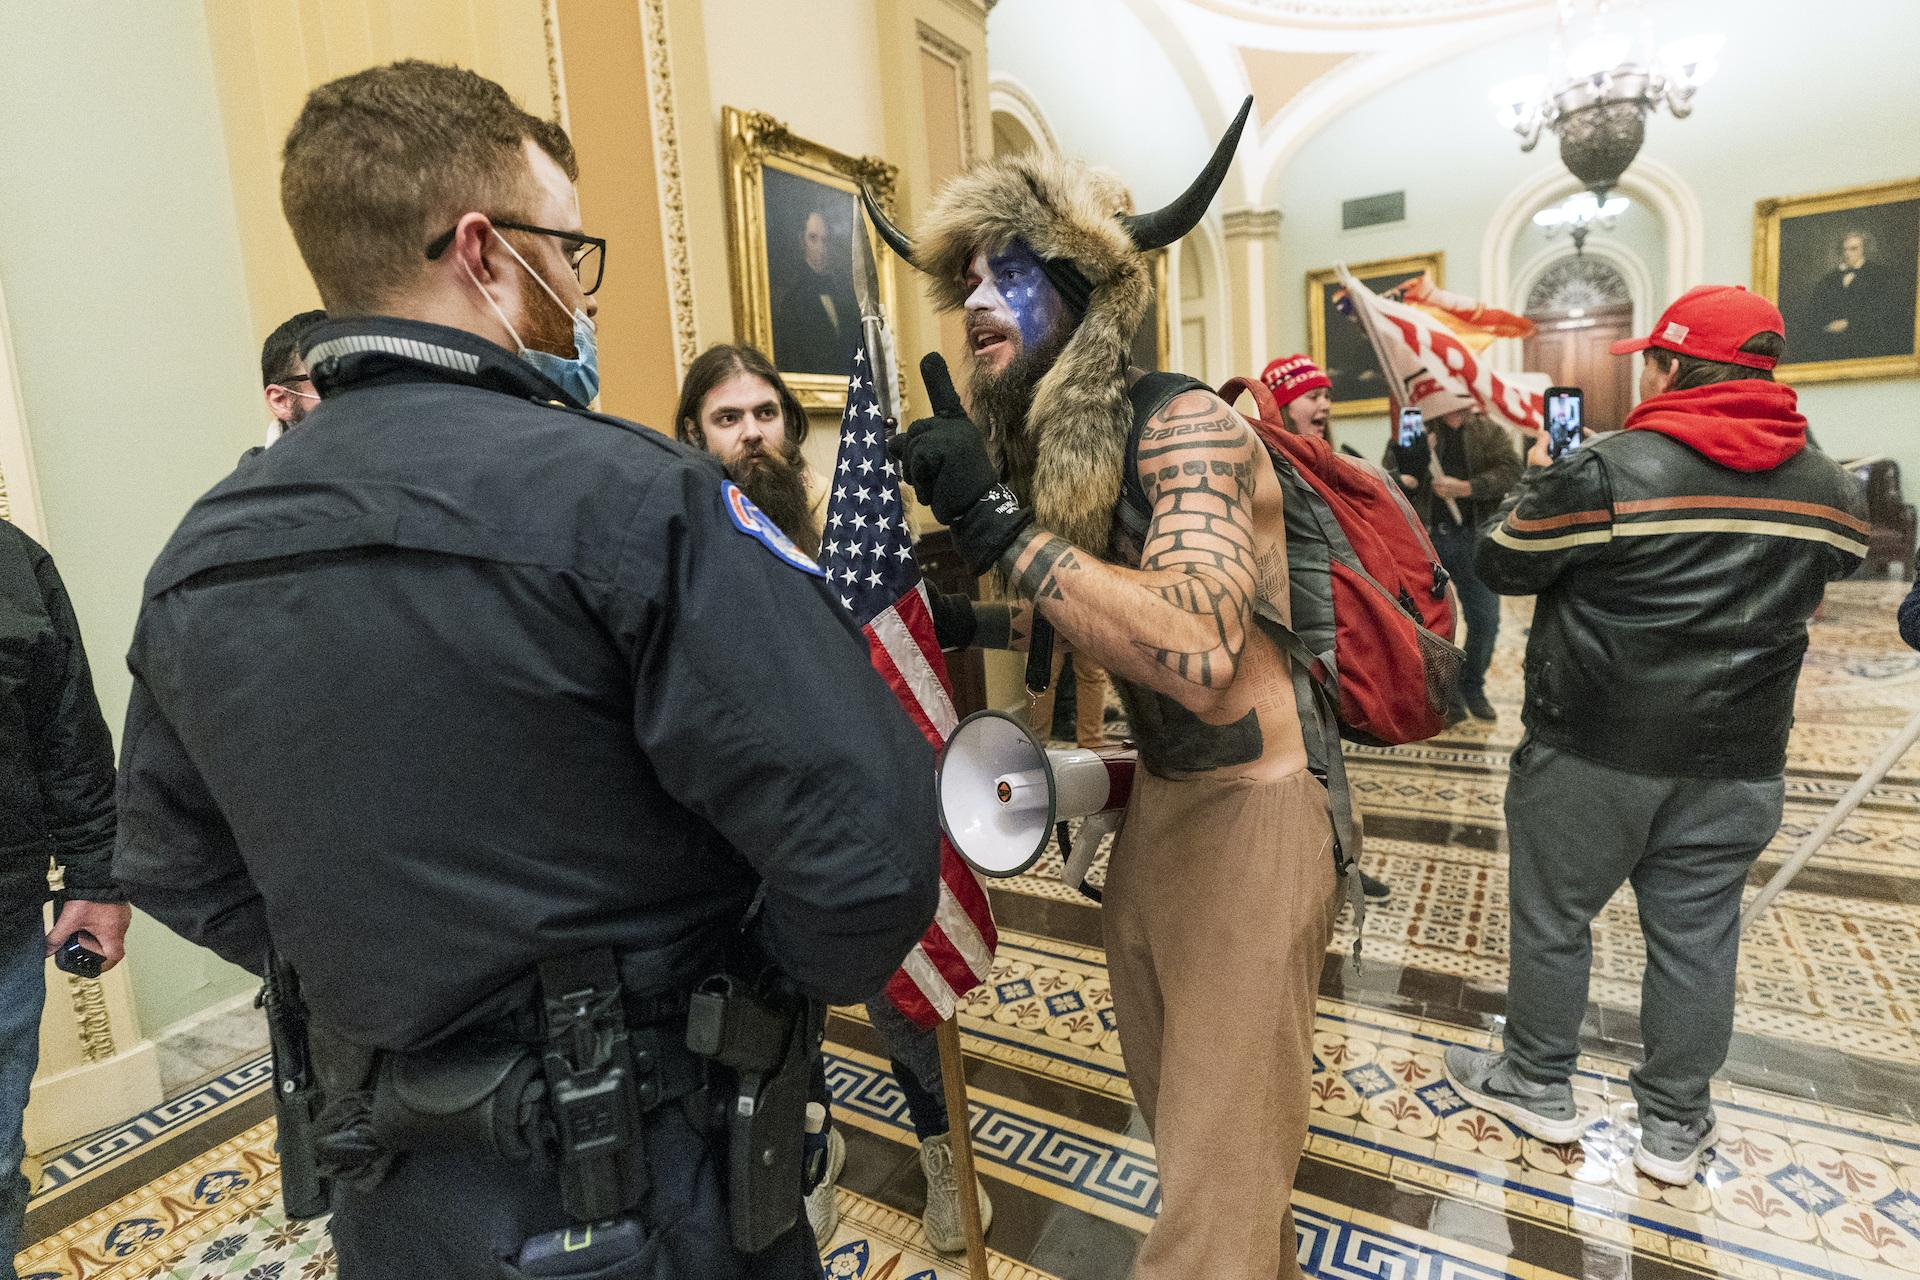 In this Jan. 6, 2021, file photo supporters of President Donald Trump are confronted by U.S. Capitol Police officers outside the Senate Chamber inside the Capitol in Washington. An Arizona man seen in photos and video of the mob wearing a fur hat with horns was also charged Saturday in Wednesday's chaos. Jacob Anthony Chansley, who also goes by the name Jake Angeli, was taken into custody Saturday, Jan. 9. (AP Photo/Manuel Balce Ceneta, File)